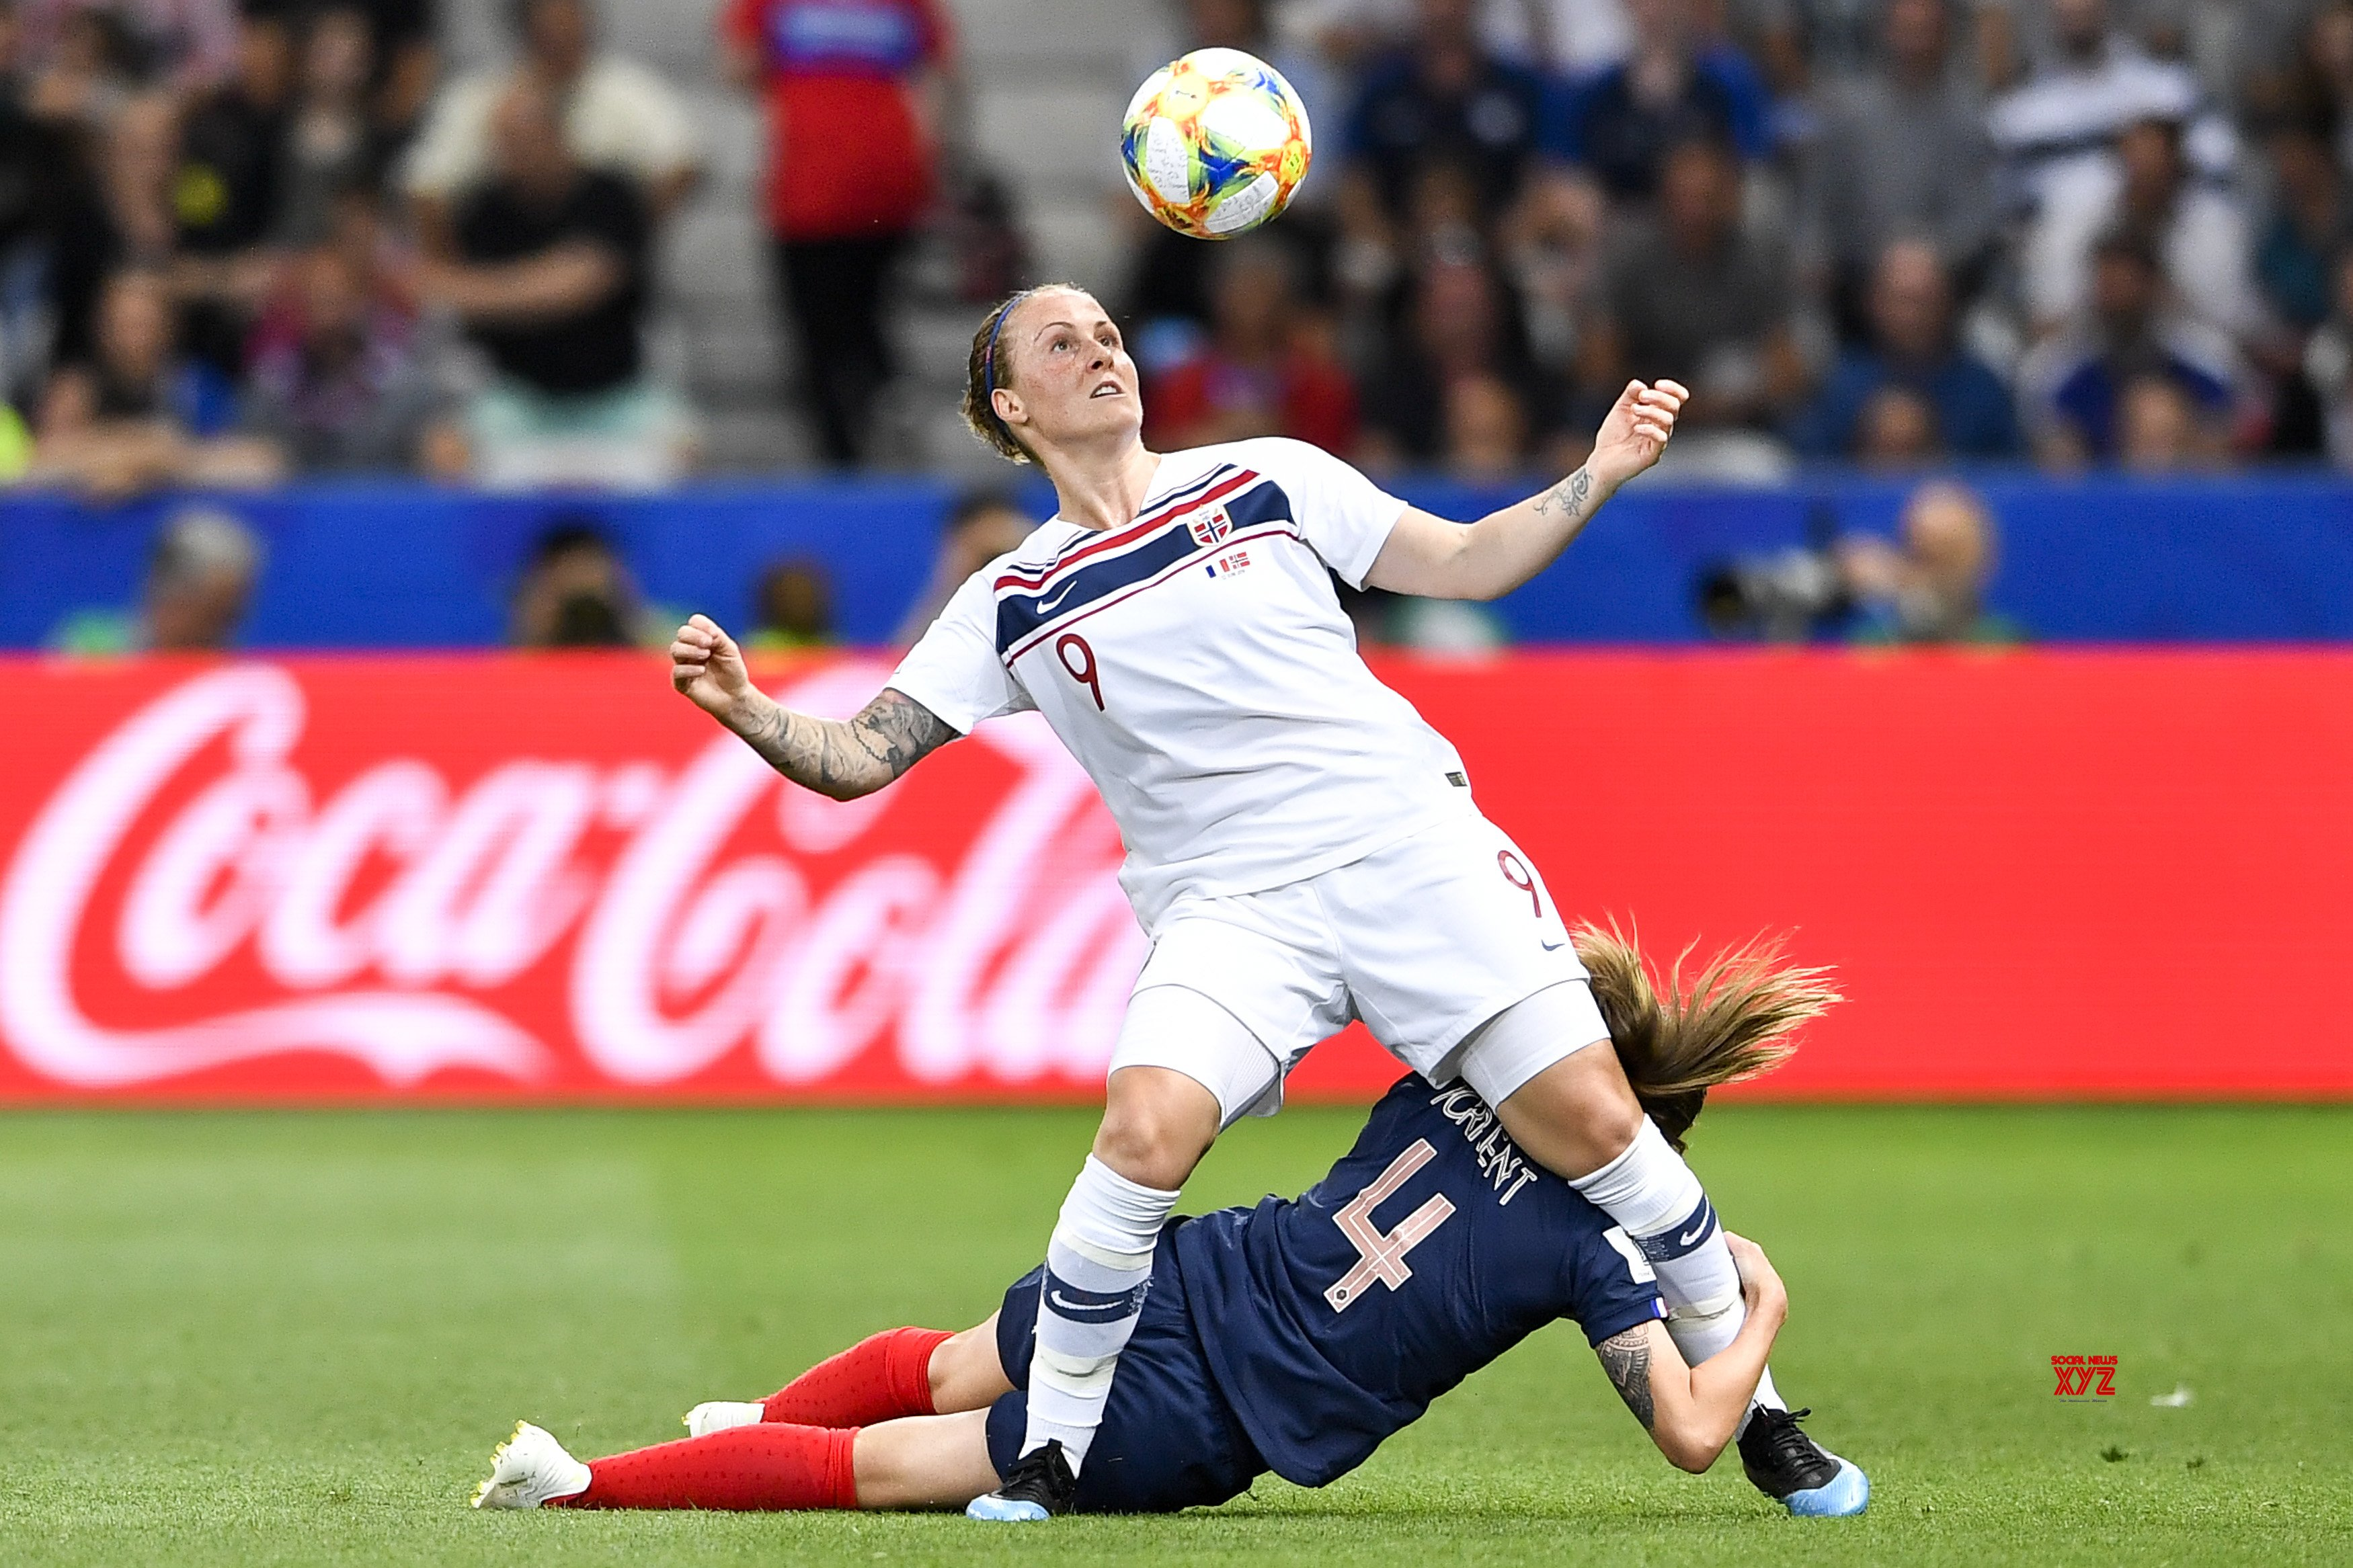 FRANCE - NICE - 2019 FIFA WOMEN'S WORLD CUP - GROUP A - FRANCE VS NORWAY #Gallery